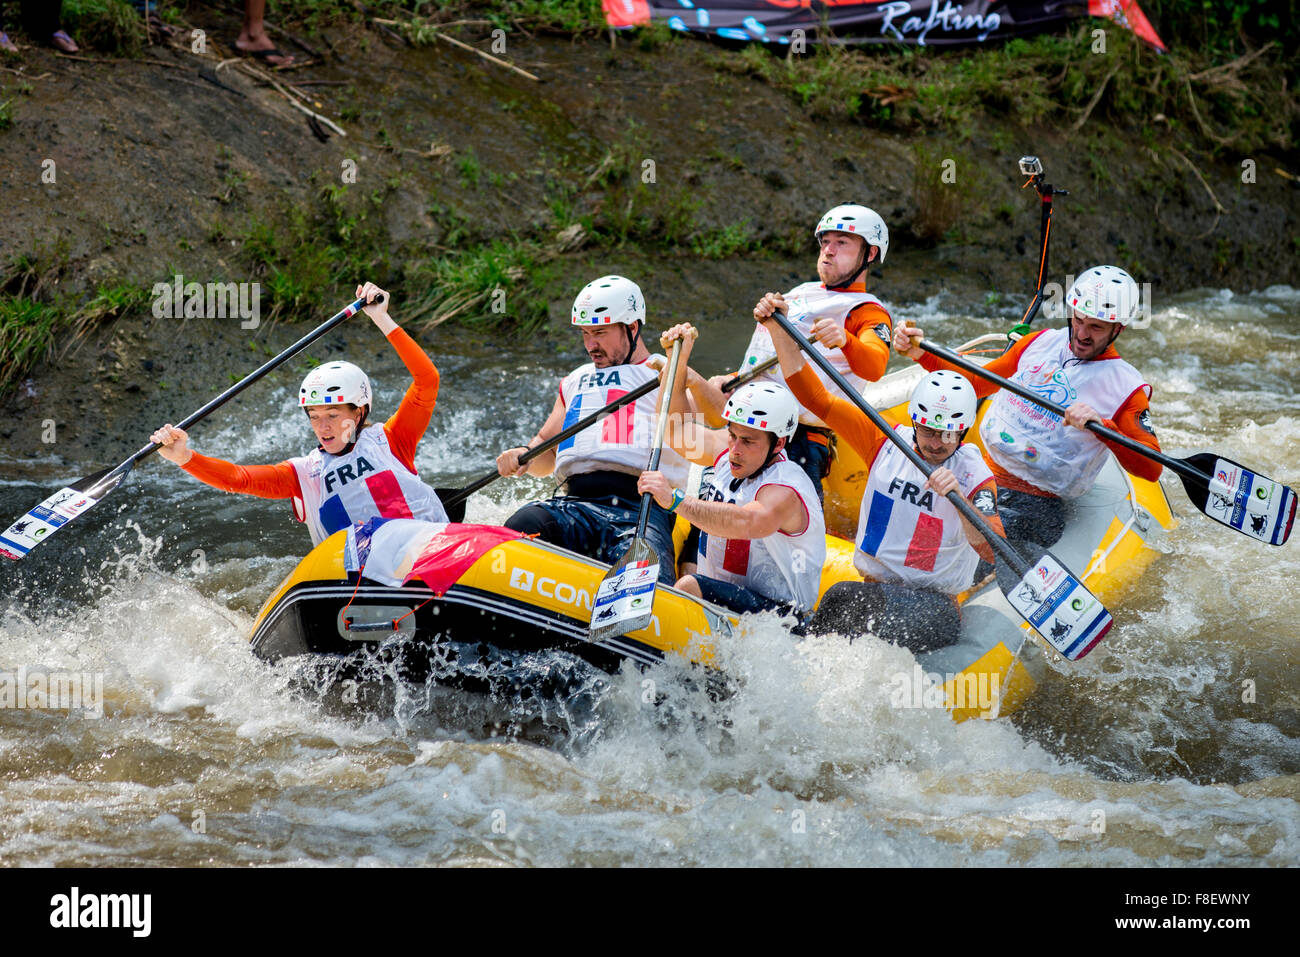 The French open men's team with one female rafter on boat in action during sprint race category on 2015 World - Stock Image